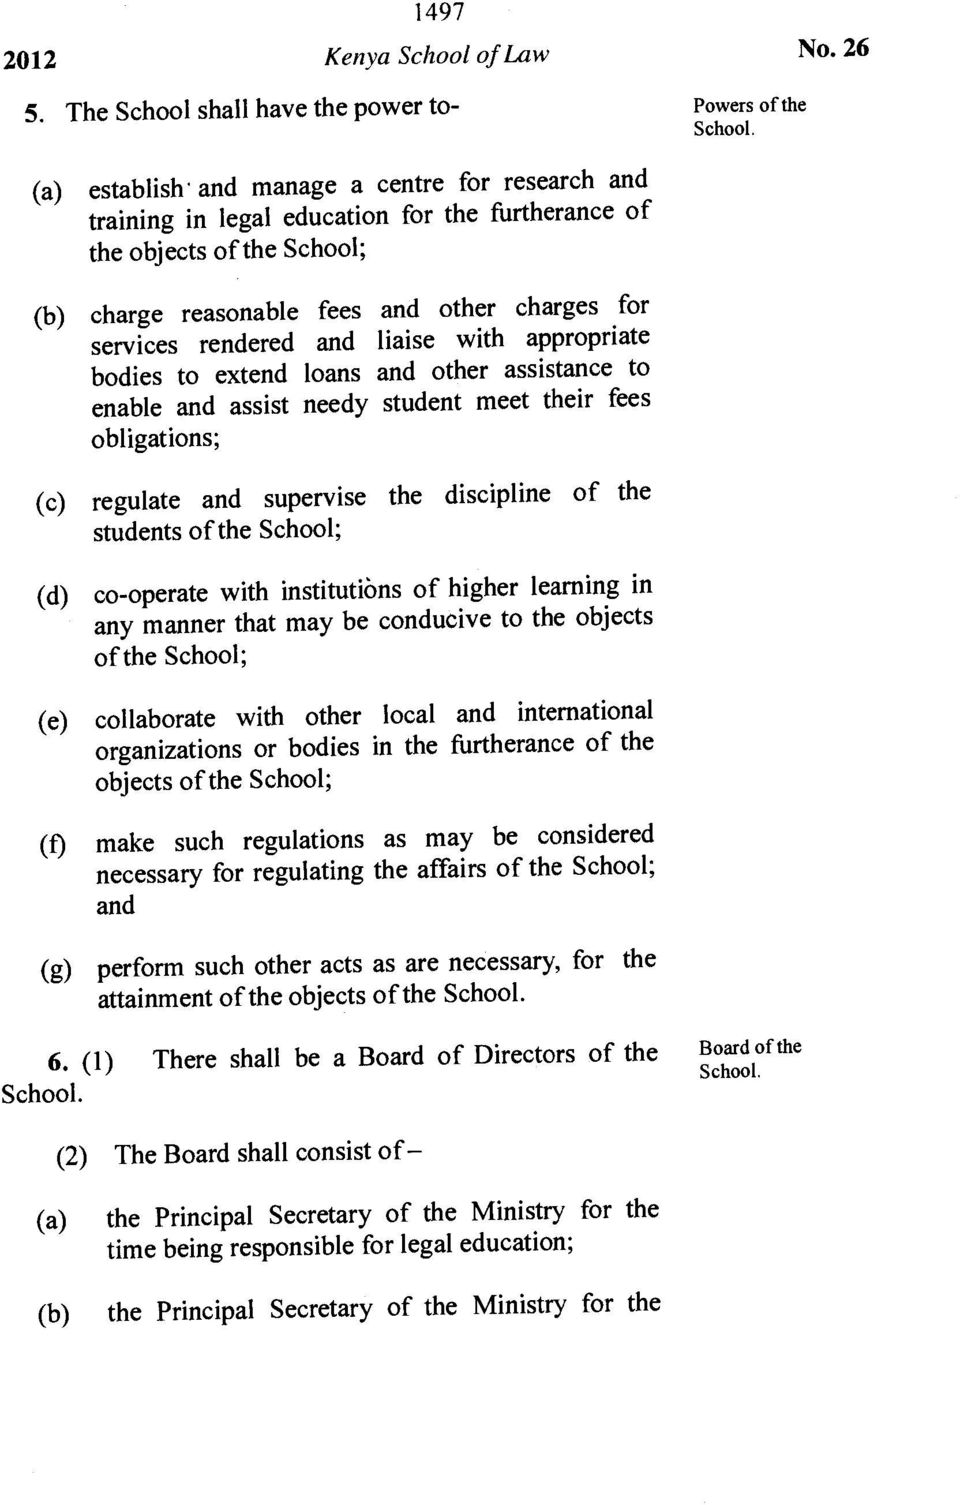 rendered and liaise with appropriate bodies to extend loans and other assistance to enable and assist needy student meet their fees obligations; regulate and supervise the discipline of the students